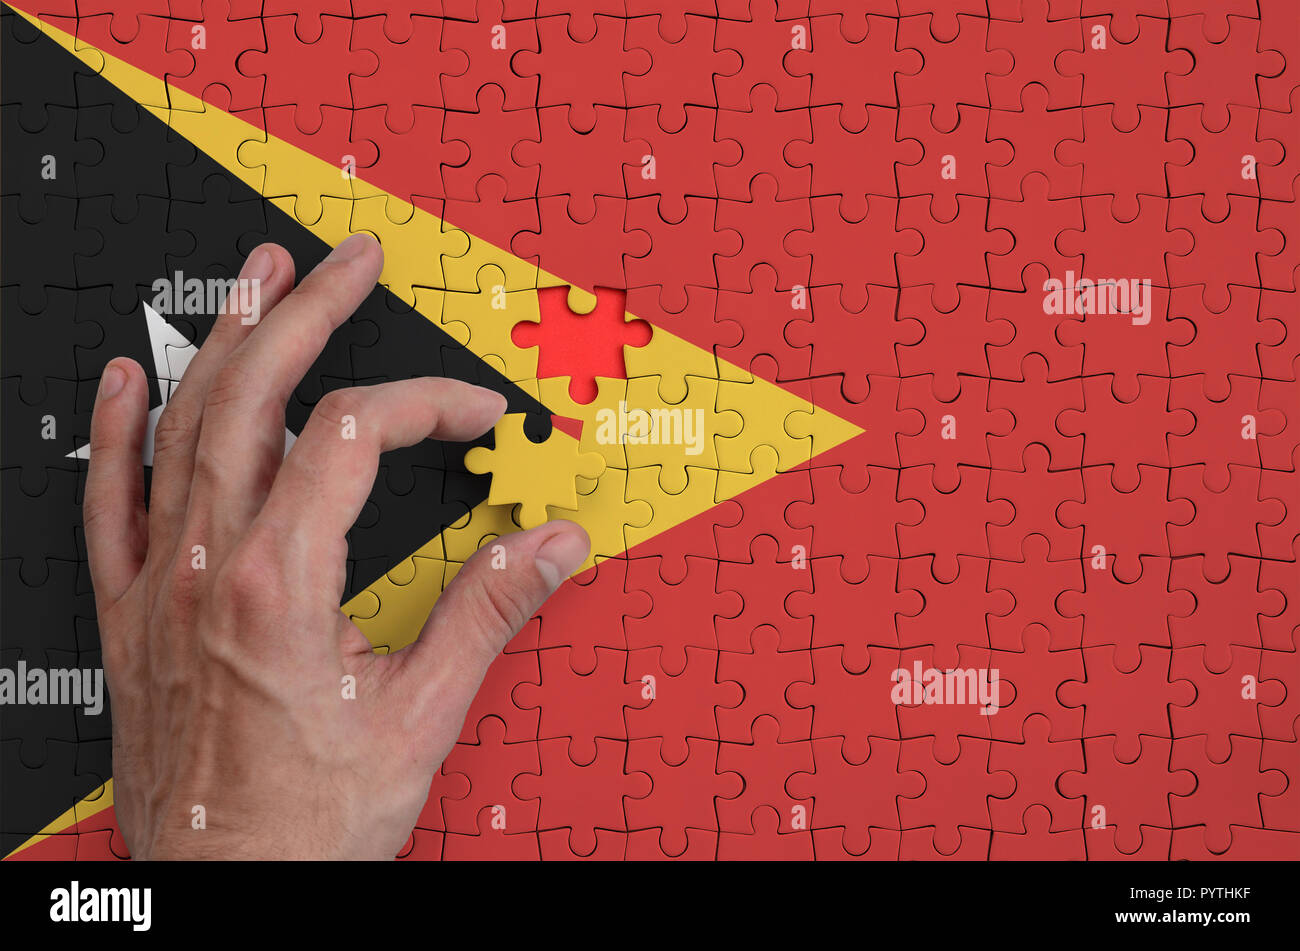 Timor Leste flag  is depicted on a puzzle, which the man's hand completes to fold. Stock Photo